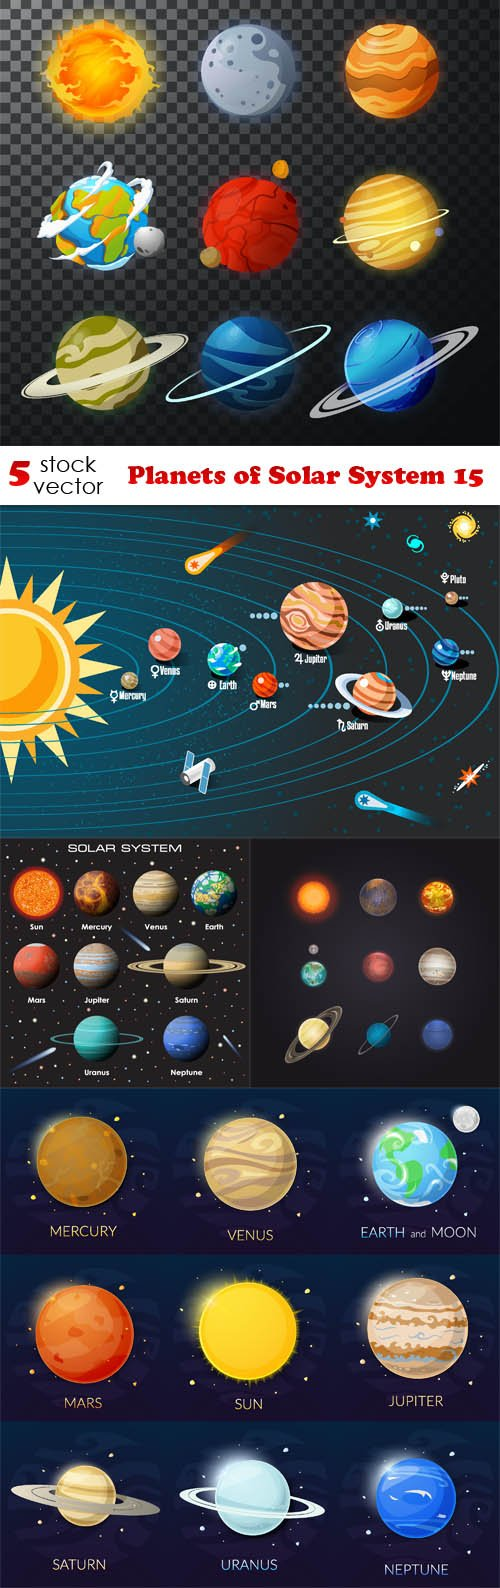 Vectors - Planets of Solar System 15